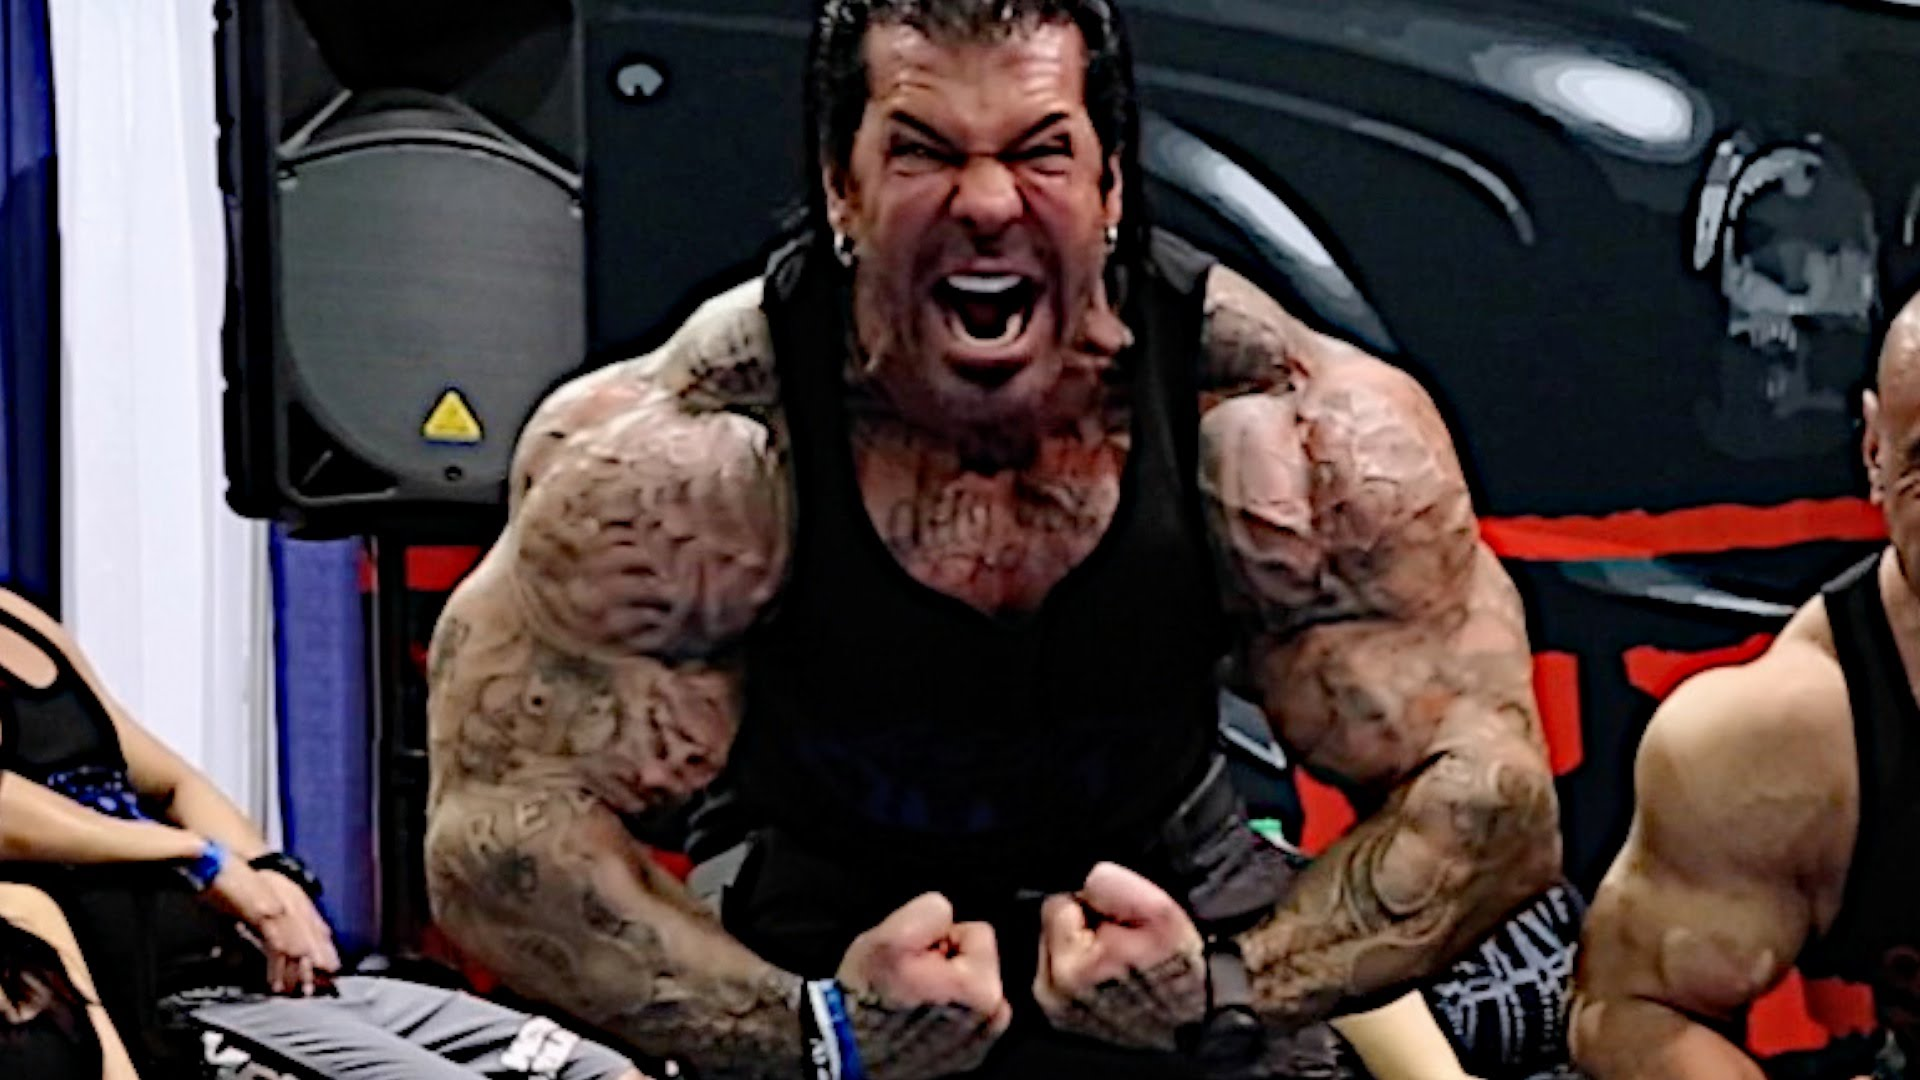 Rich Piana dead at 46 – Elite bodybuilder dies after two week coma